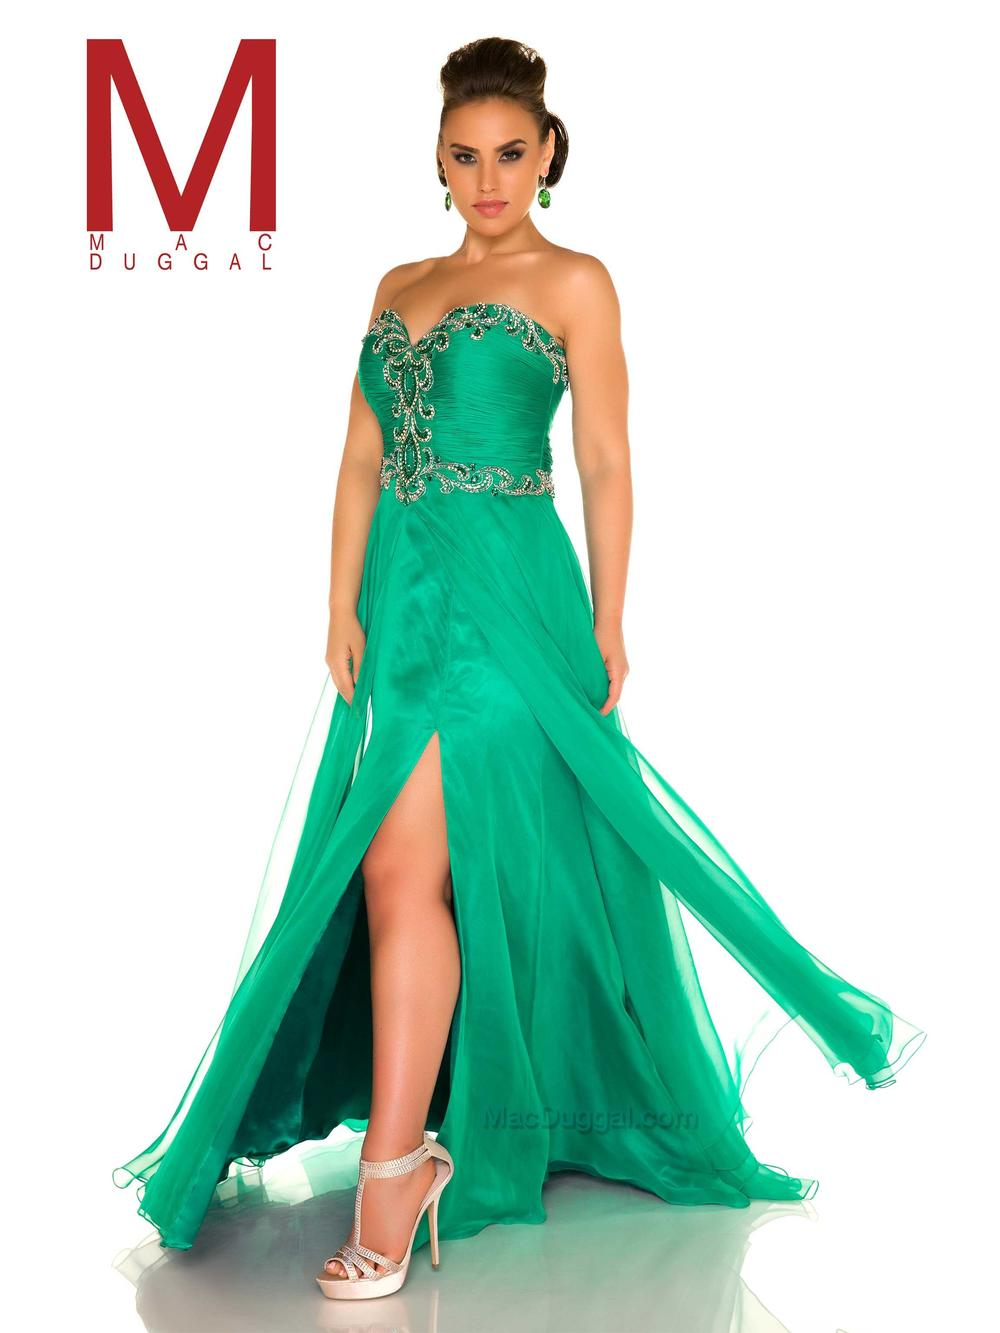 65467 -  Shine bright in this floor length, emerald plus size prom dress that looks stunning both on and off the dance floor. As one of the top plus-size dresses in the collection, the strapless sweetheart neckline is perfectly adorned around fabulous ruching with glass cut stones and sequins.Lastly, the flowing chiffon skirt is complete with a demure breakaway and high leg slit.  Colors Available- Emerald